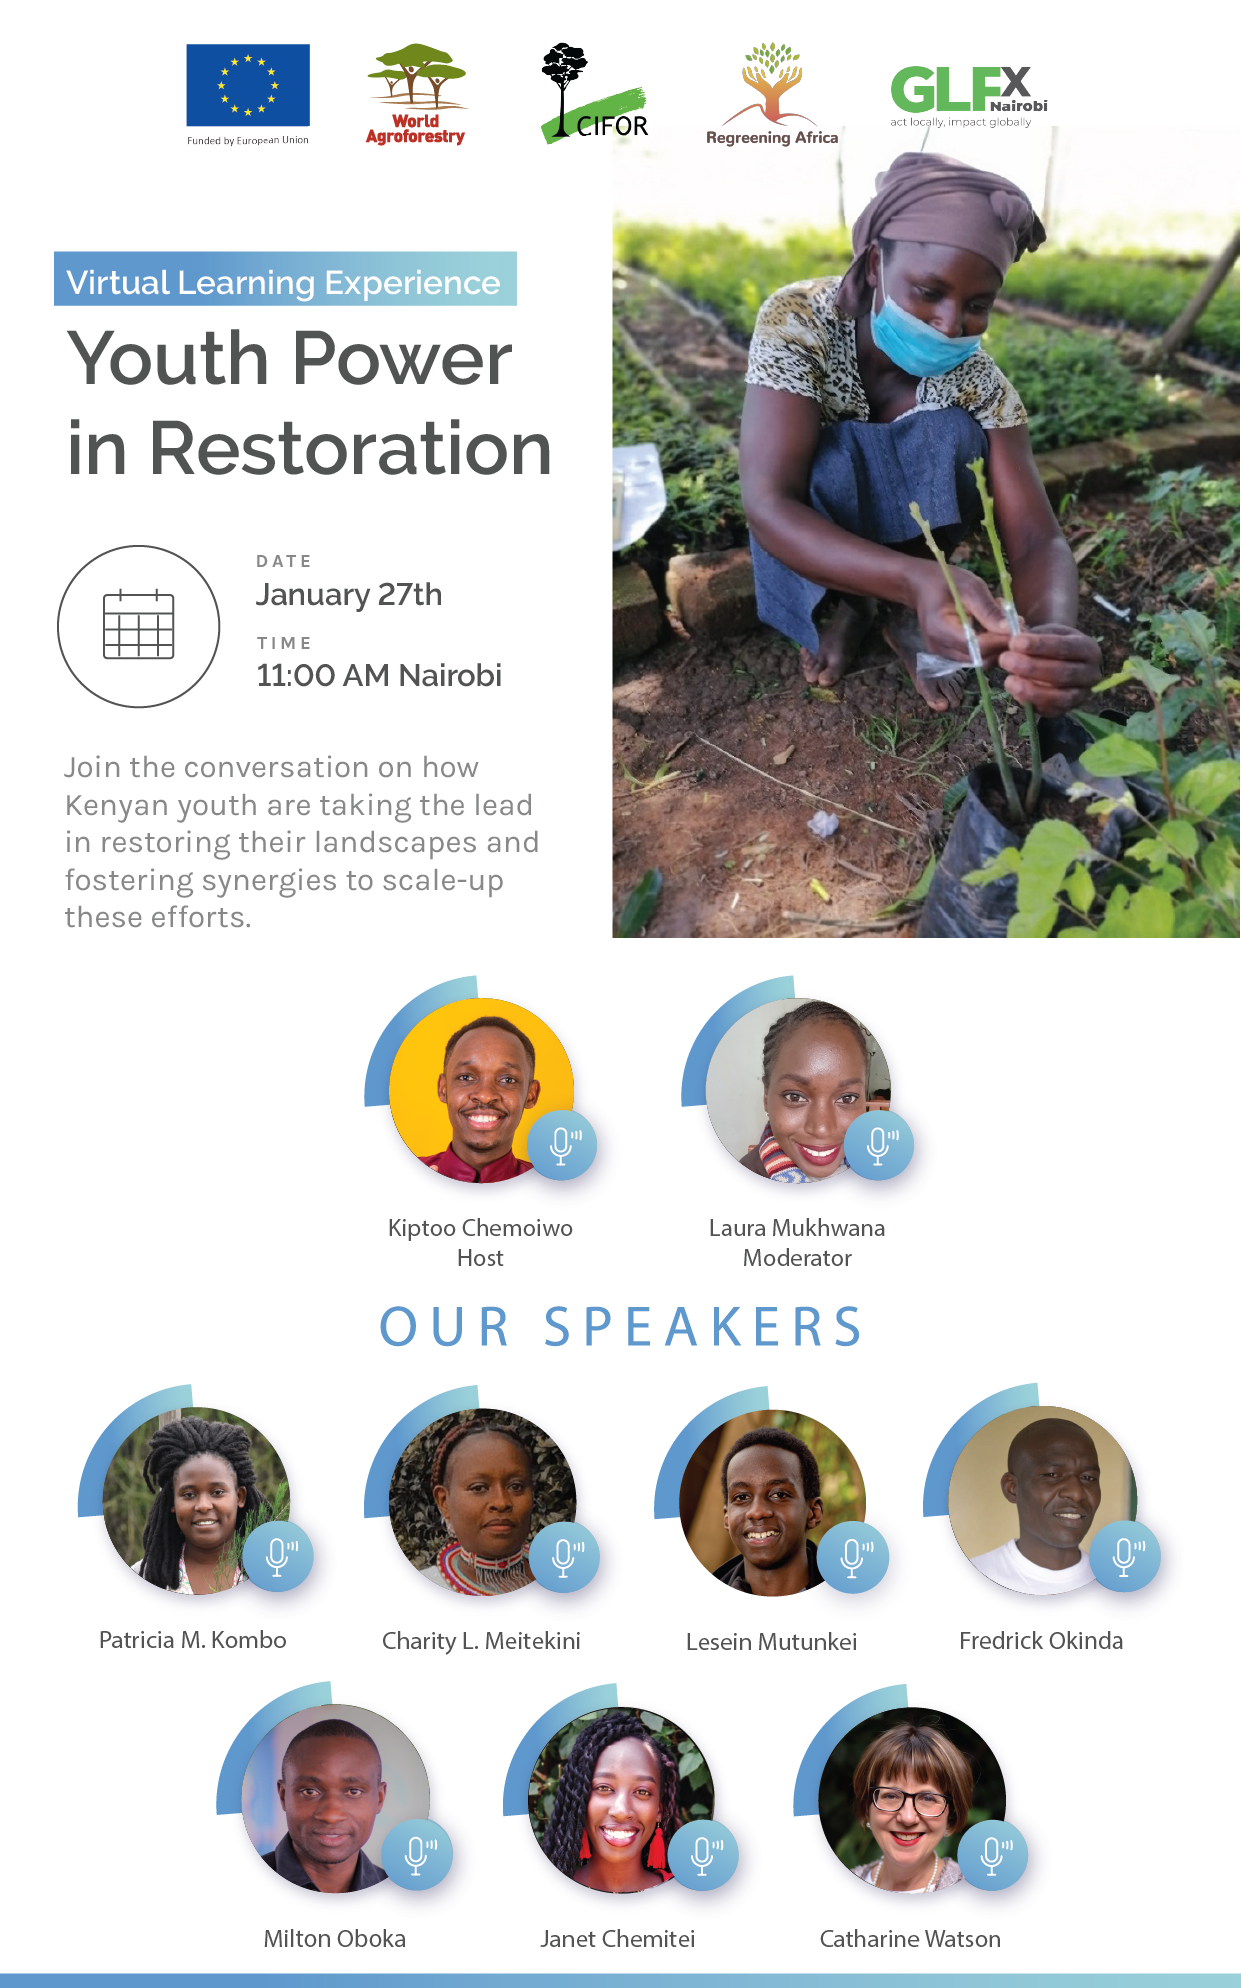 Youth Power in Restoration